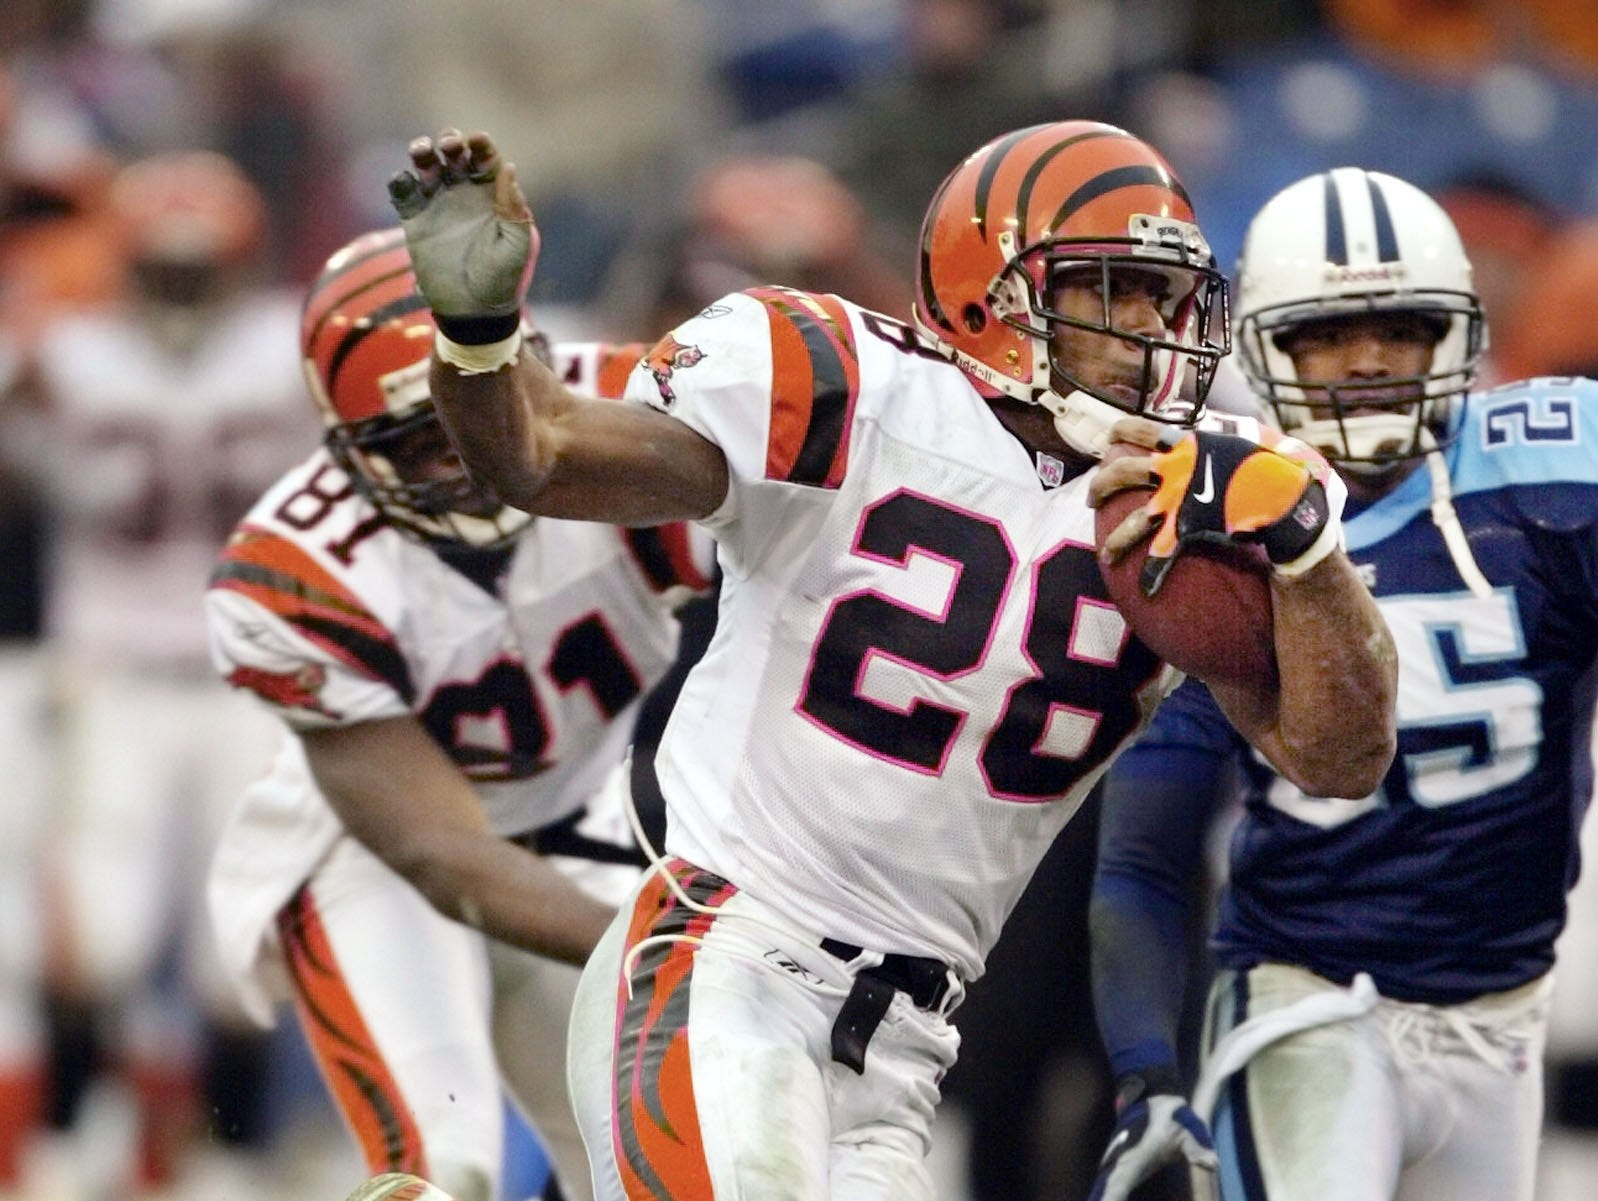 Text: Cincinnati Bengals' half back Corey Dillon (28) moves past Tennessee Titans' cornerback DeRon Jenkins (25) on a 34-yard touchdown run in the second quarter on Sunday, Jan. 6, 2002 in Nashville, Tenn. At left is Bengals' wide receiver Ron Dugans (81).